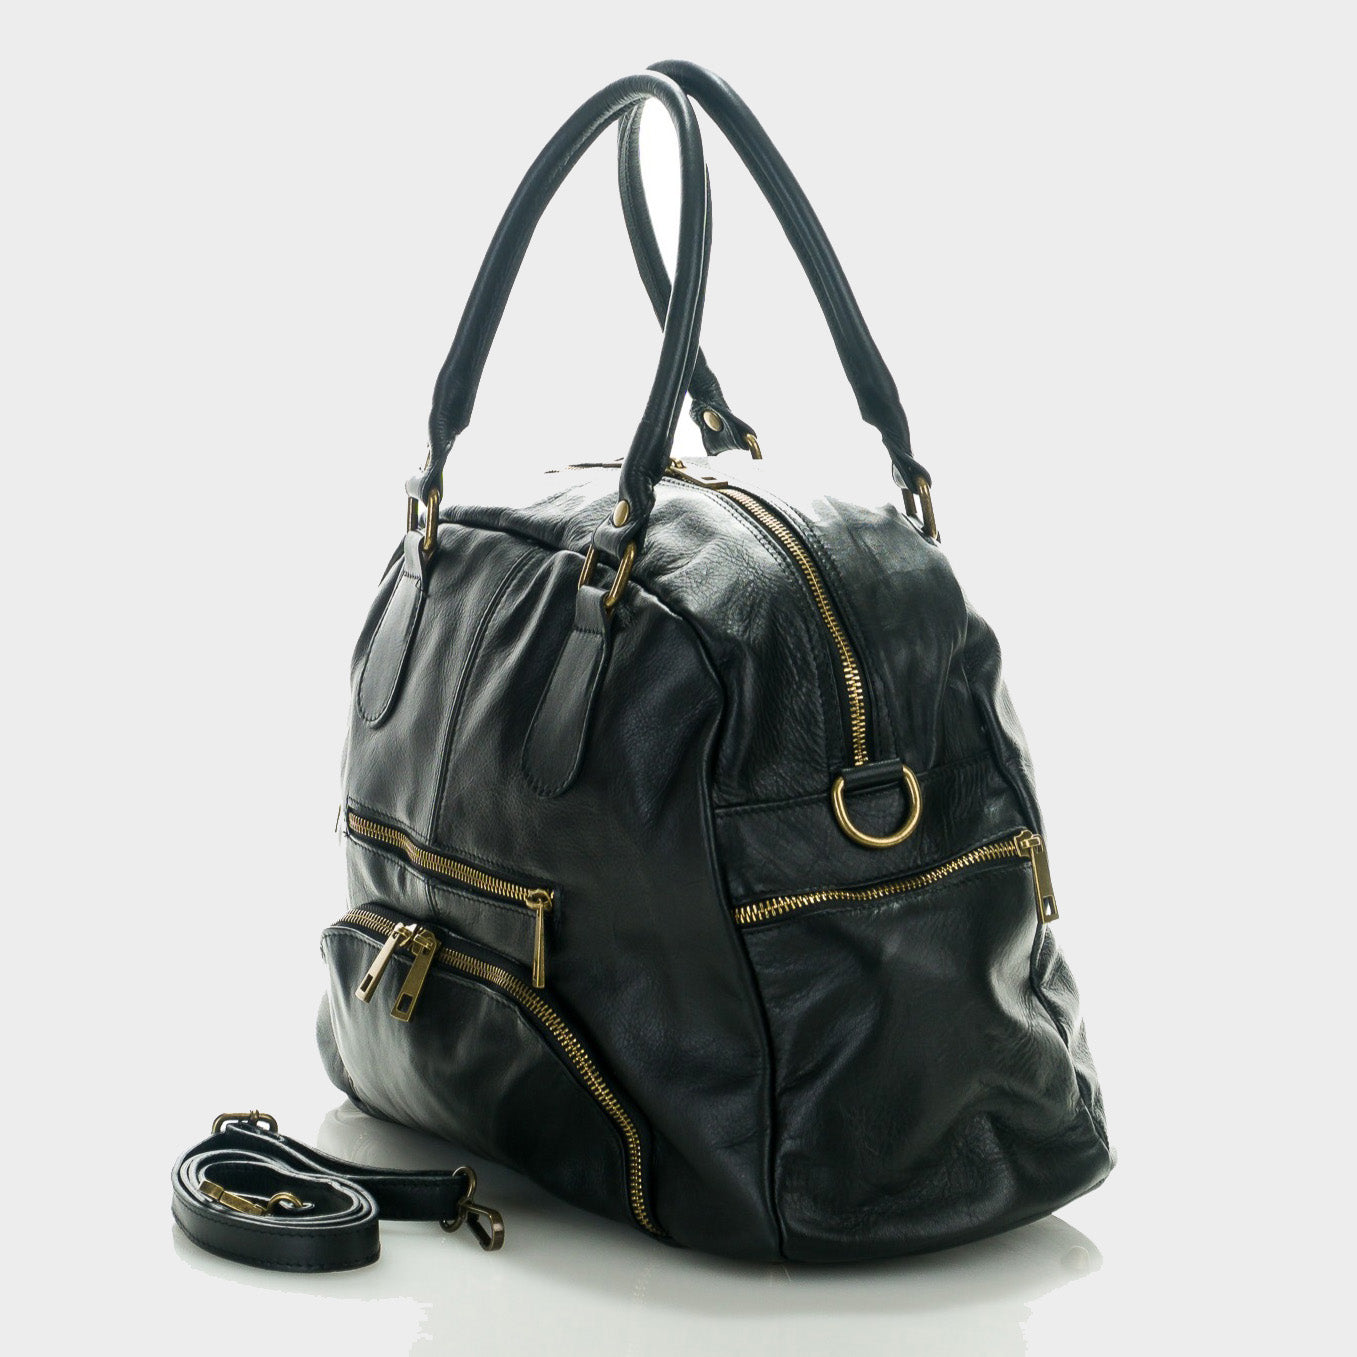 CLEARANCE SALE The Overnighter / Duffel Bag